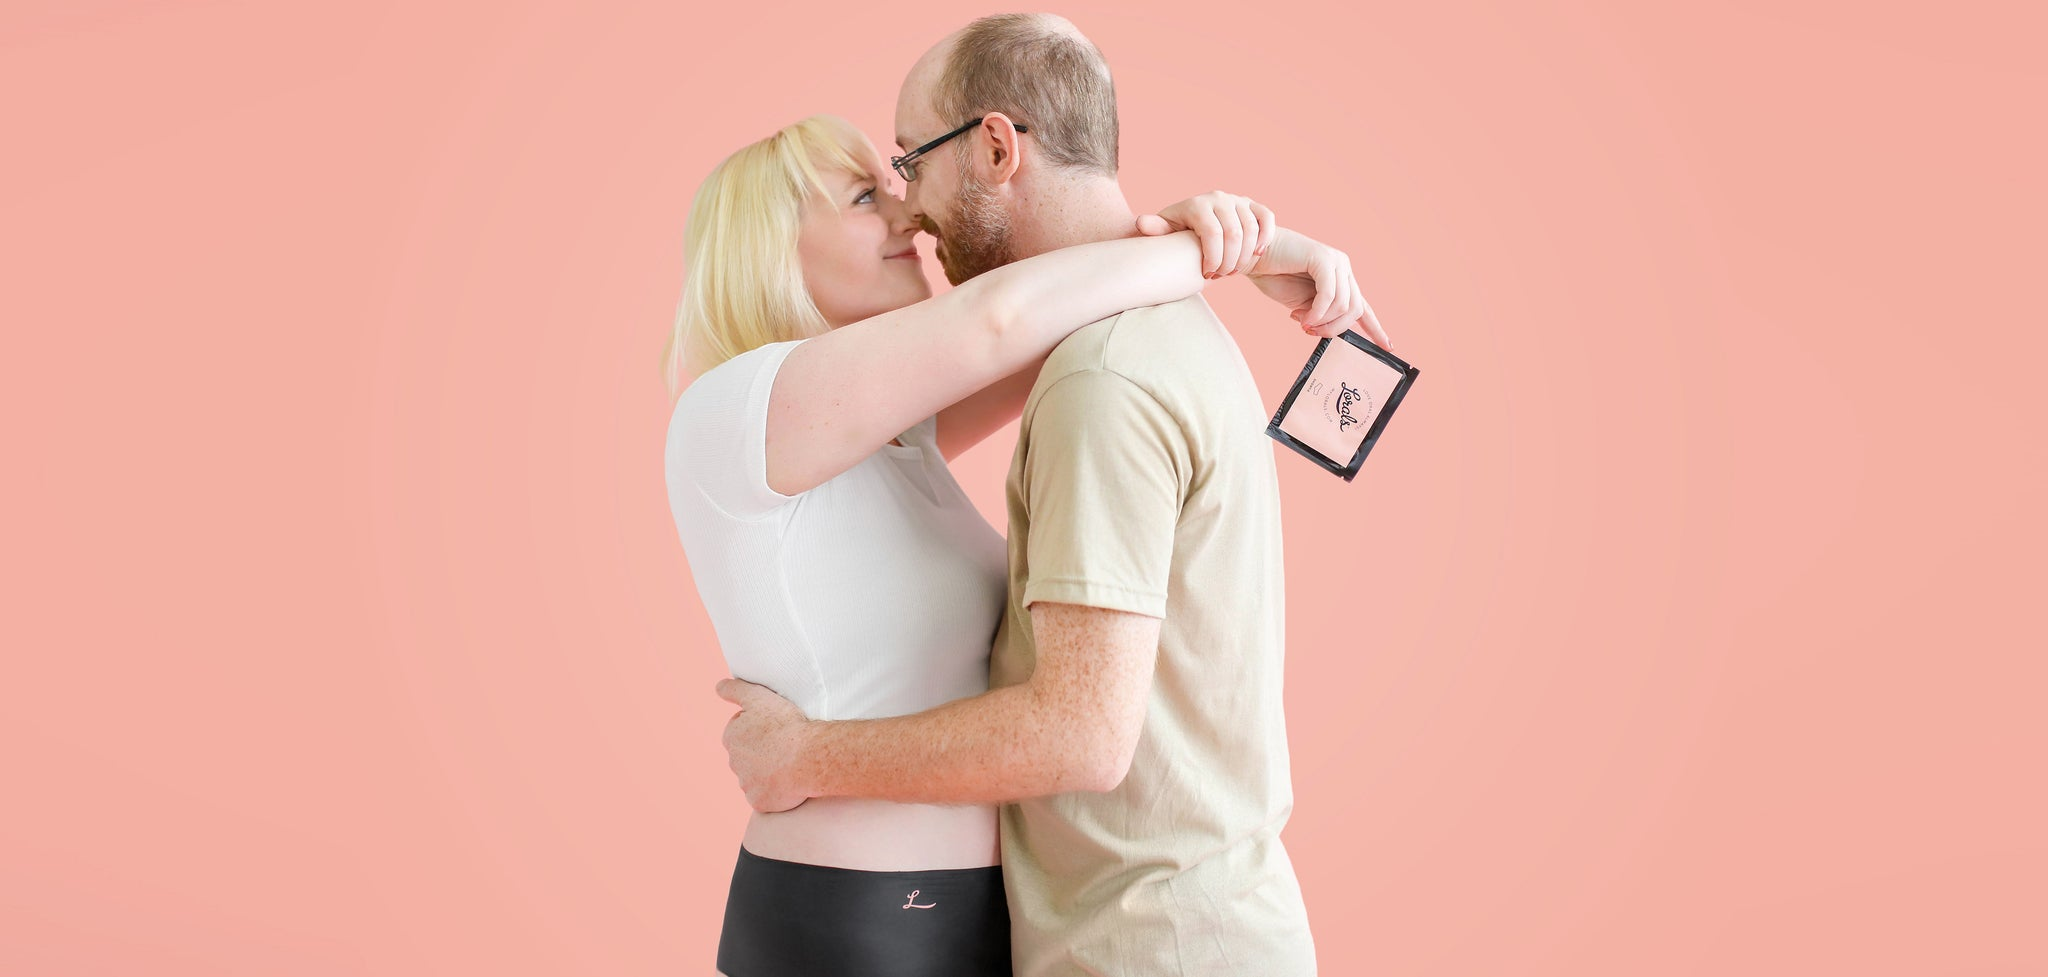 Curvy woman hugging man with beard. Woman is wearing latex underwear and holding packet of Lorals